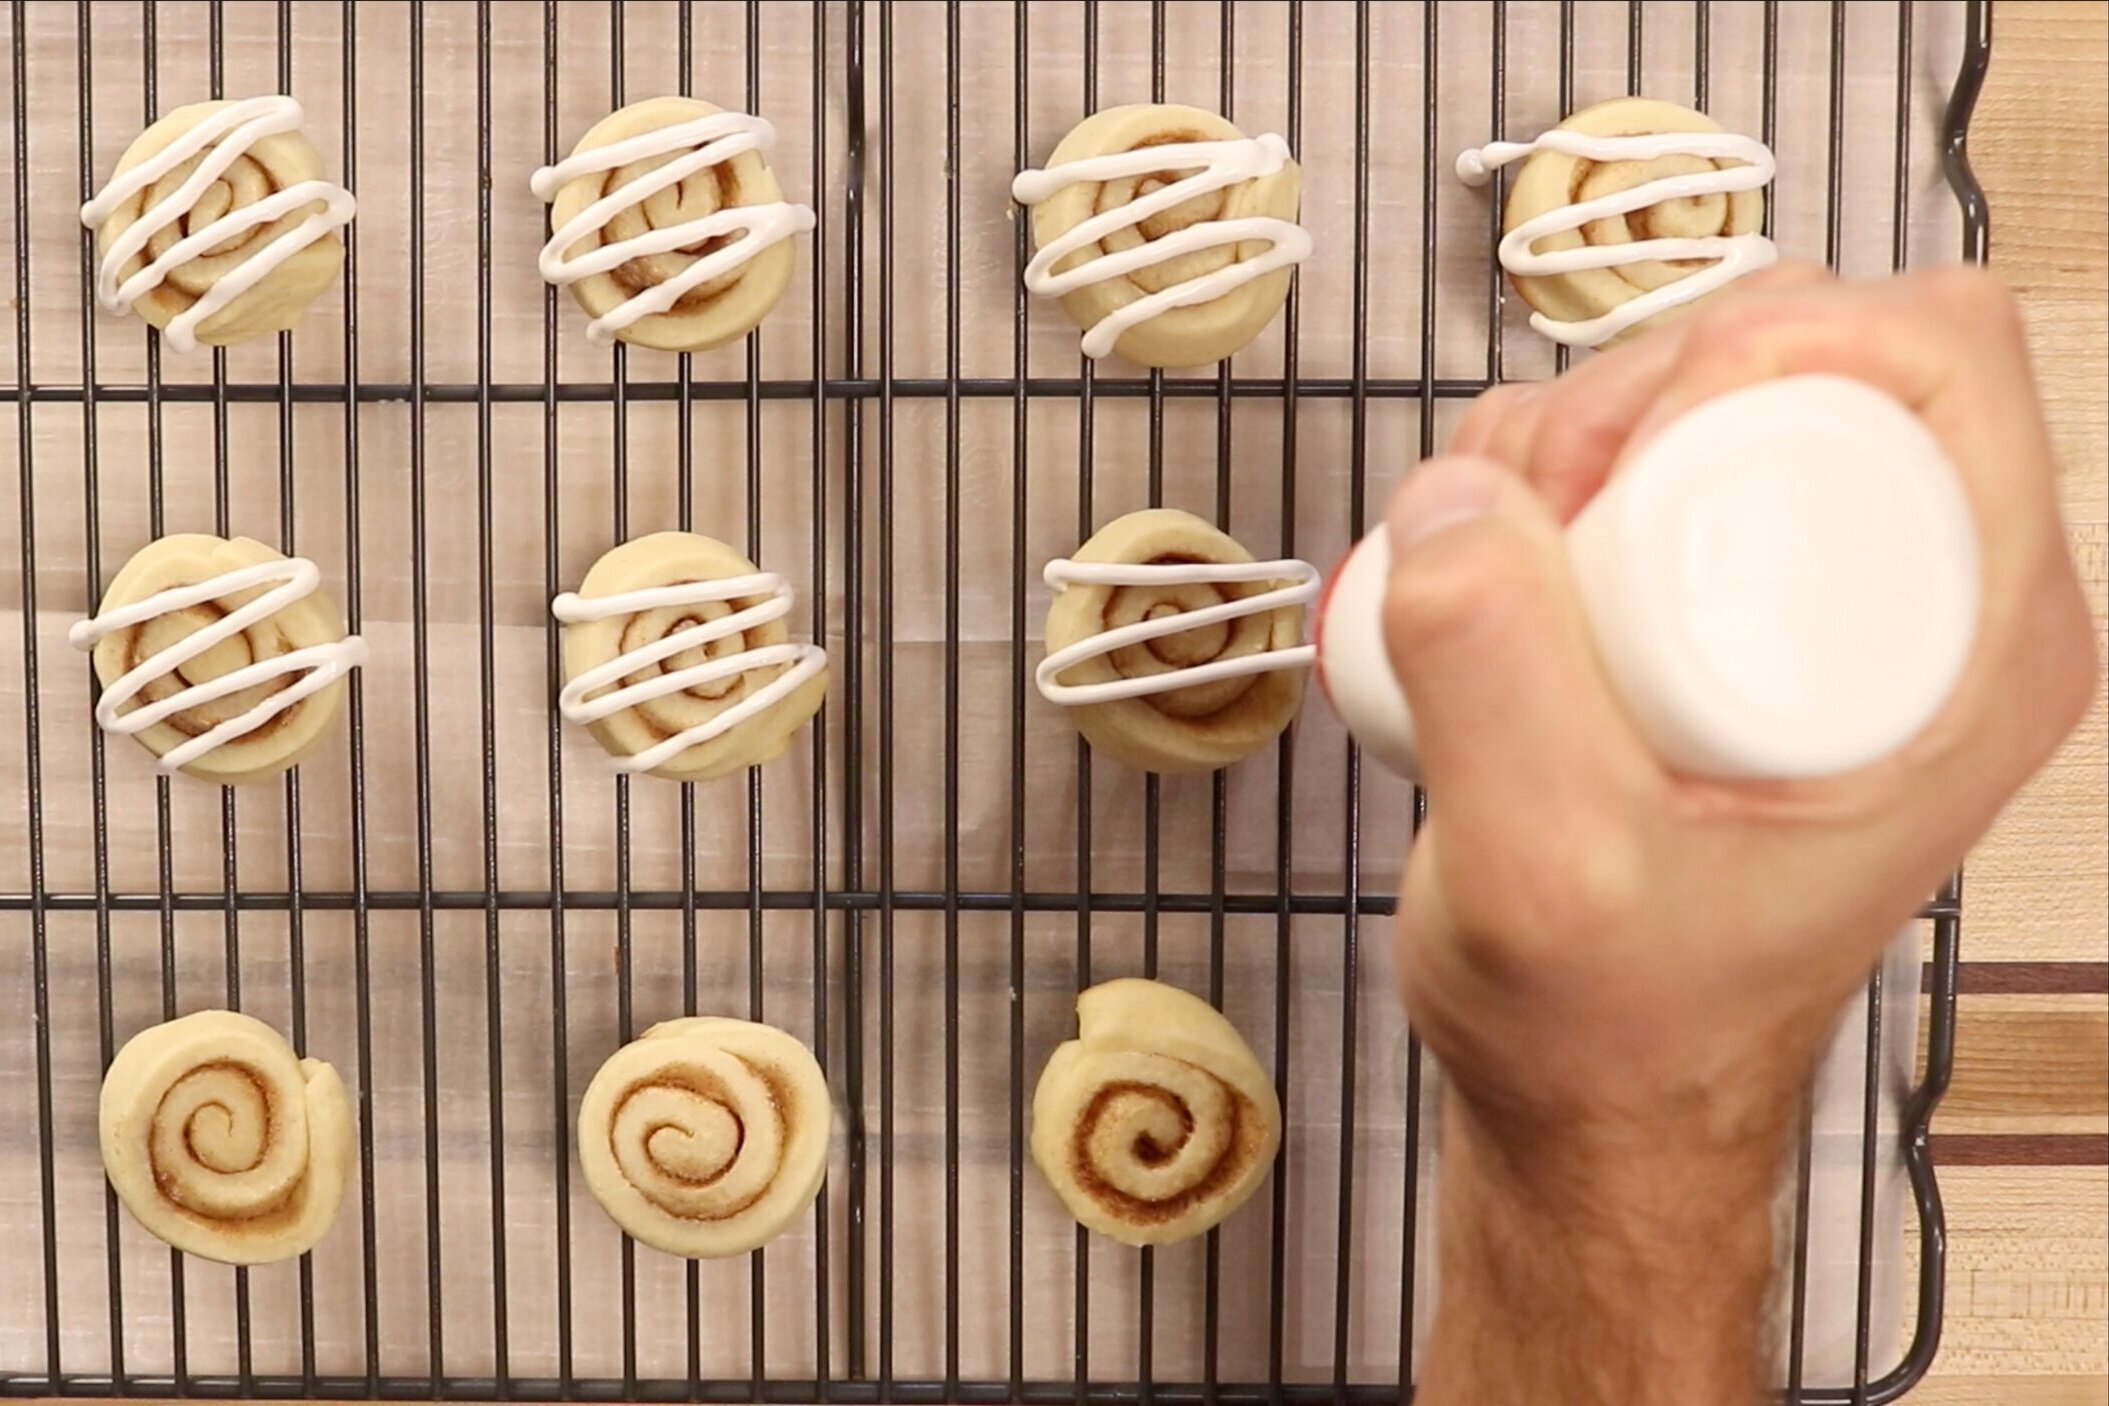 18. Using a piping bag or a spoon, drizzle icing over cookies. Let harden for an hour before storing. -